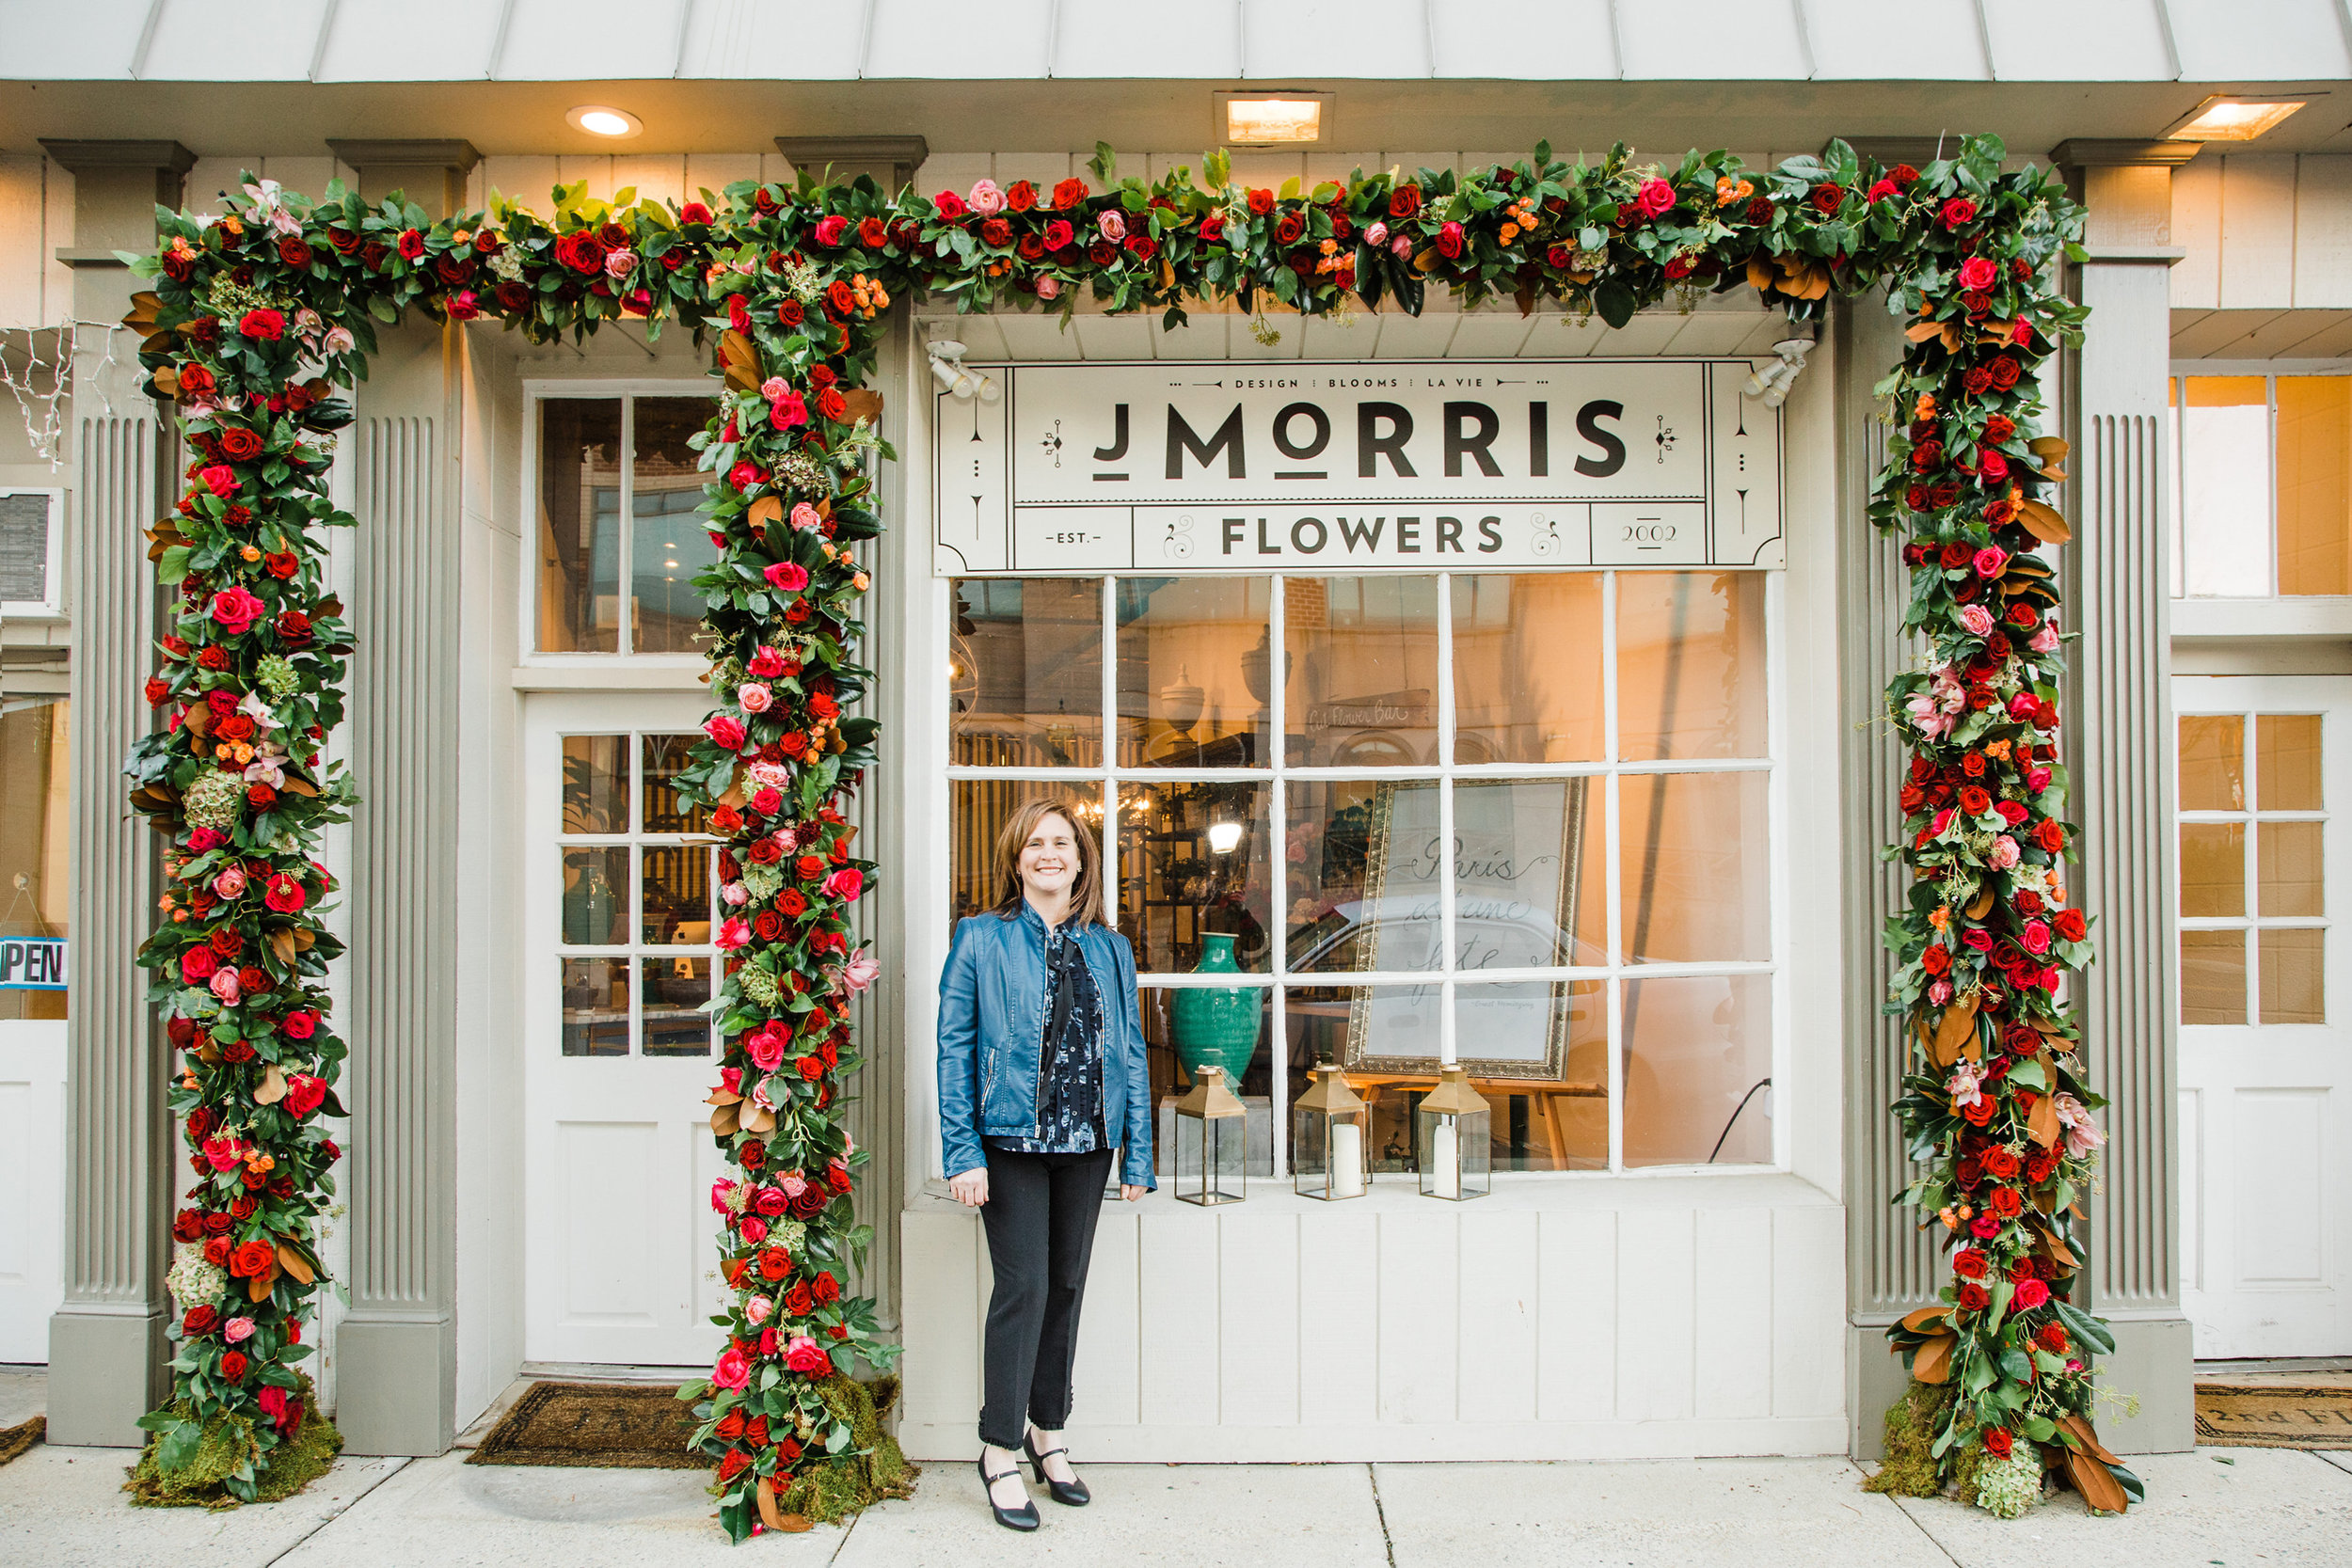 Jennifer Morris, Owner and Director of Blooms for J. Morris Flowers, 120 East Market Street. Ruby Red, Burgundy and burnt Orange strike a balance with blush pink and greens. This installation was a team effort under the direction of Jennifer, inspired by installations seen on the streets of London.